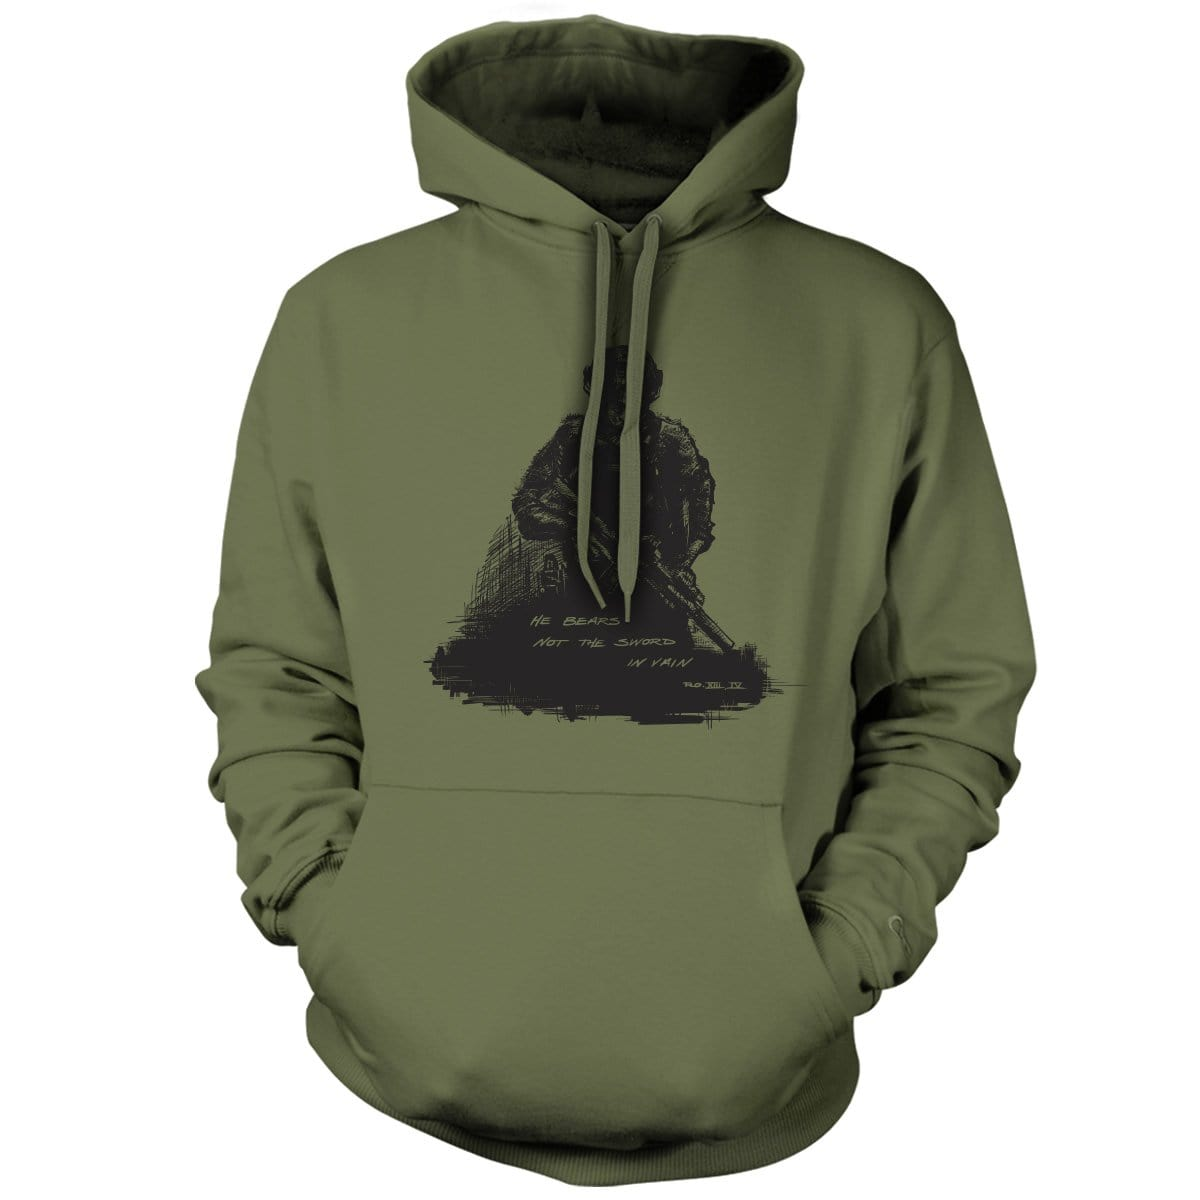 Romans 13:4 Hoodie - Military Green - Hoodies - Pipe Hitters Union